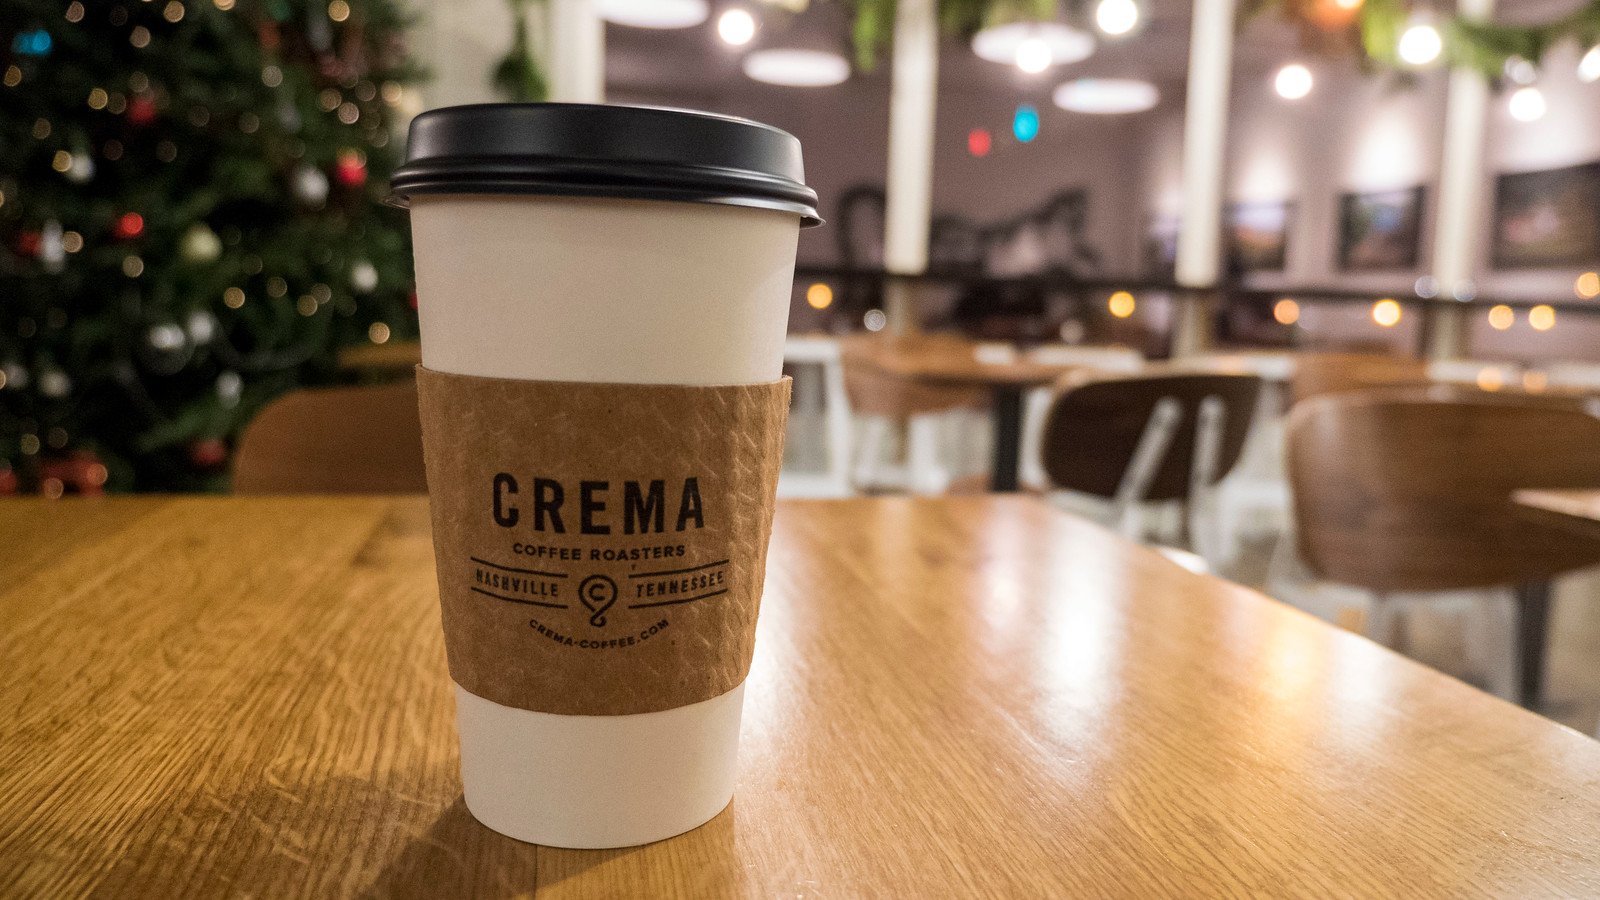 Things to Do in Nashville - Crema Coffee